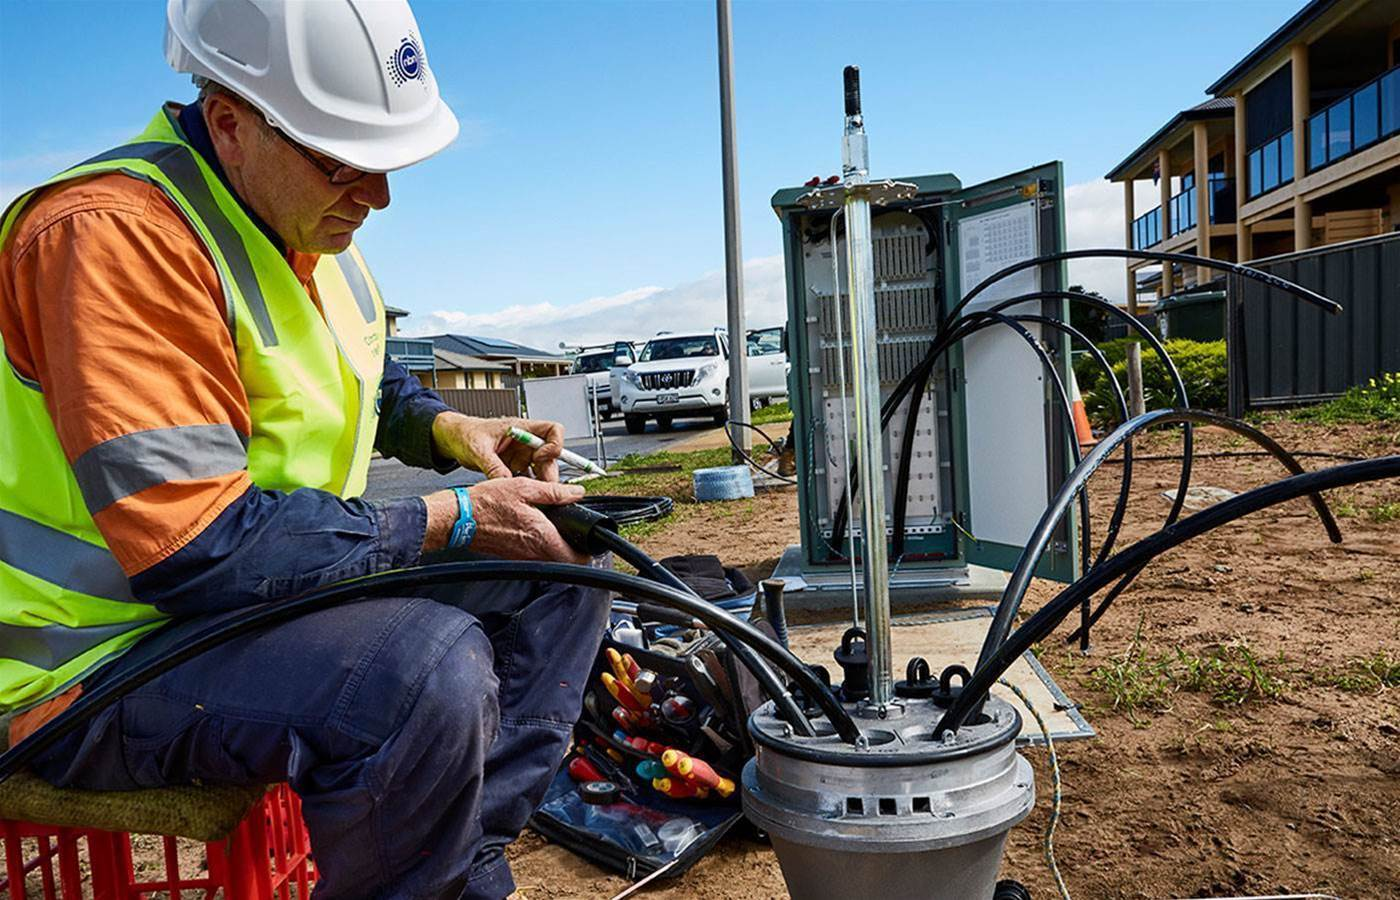 NBN Co's 50Mbps push drives up 'underperforming' services